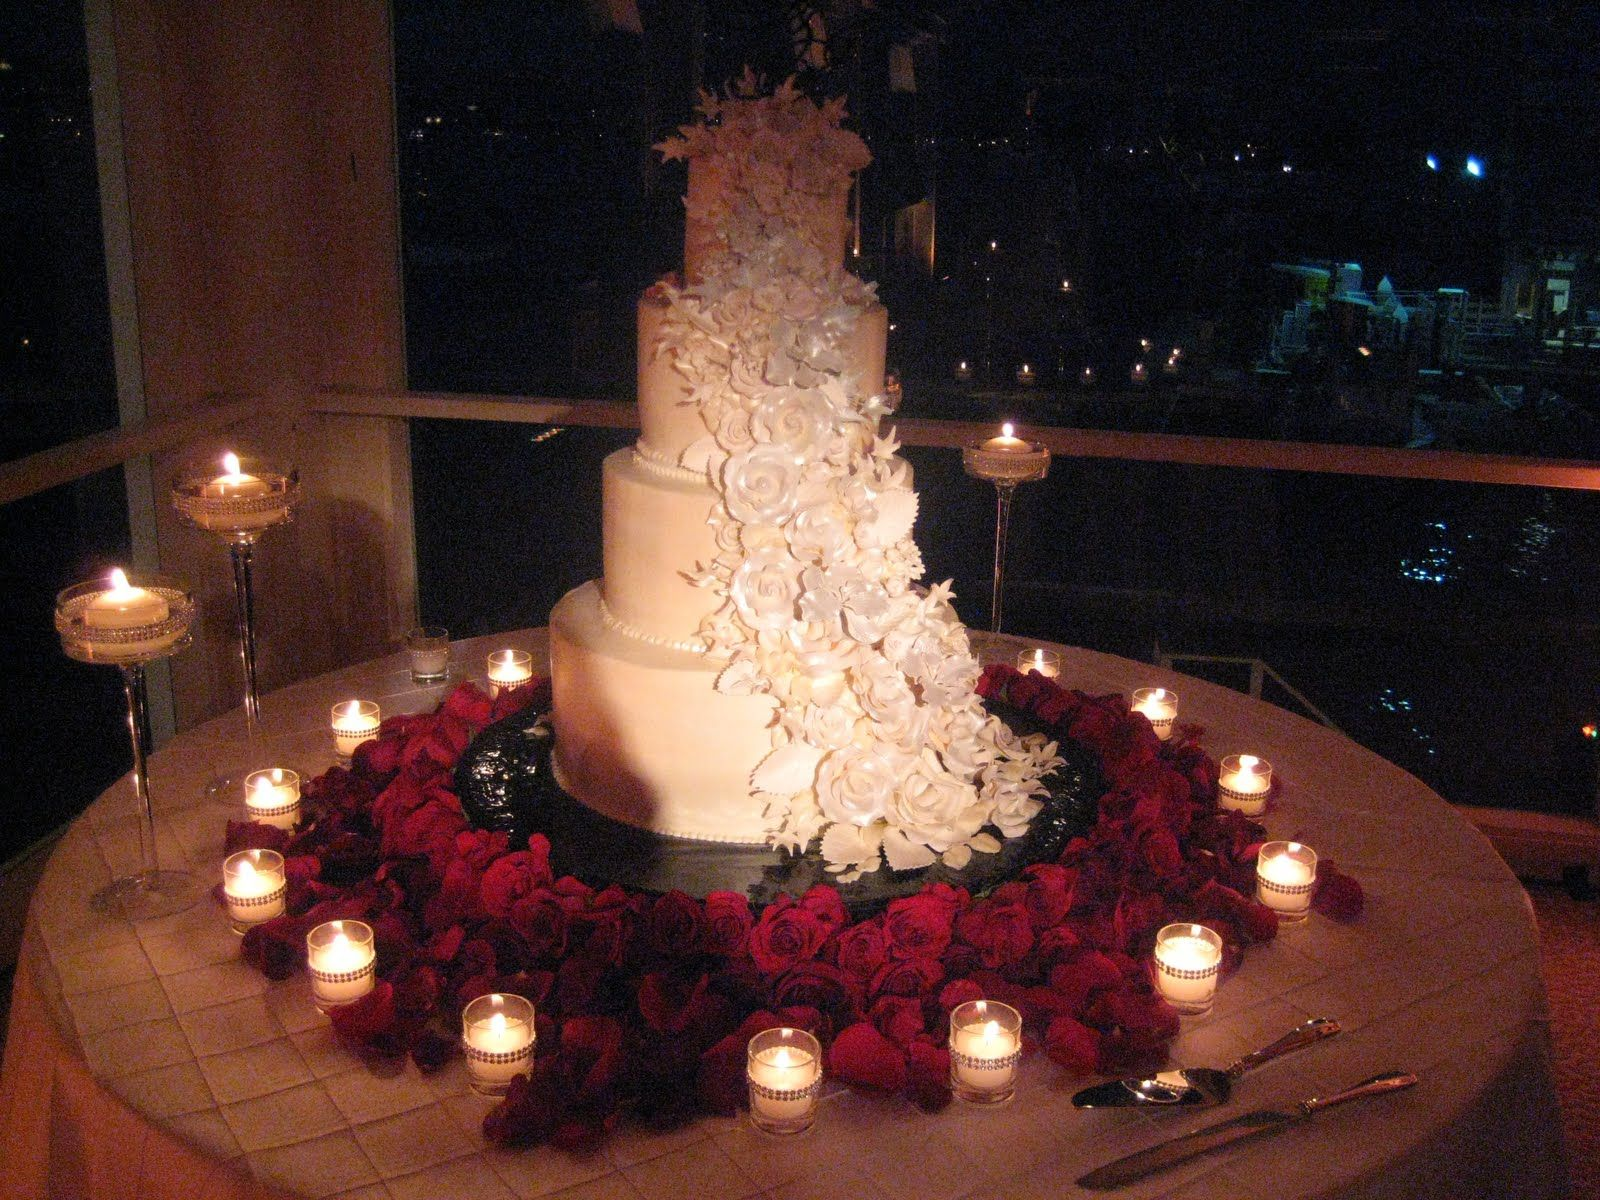 Classic Black And White Wedding With Red Roses Newport Beach Ca Black Wedding Table Black Wedding Table Decorations Wedding Cake Table